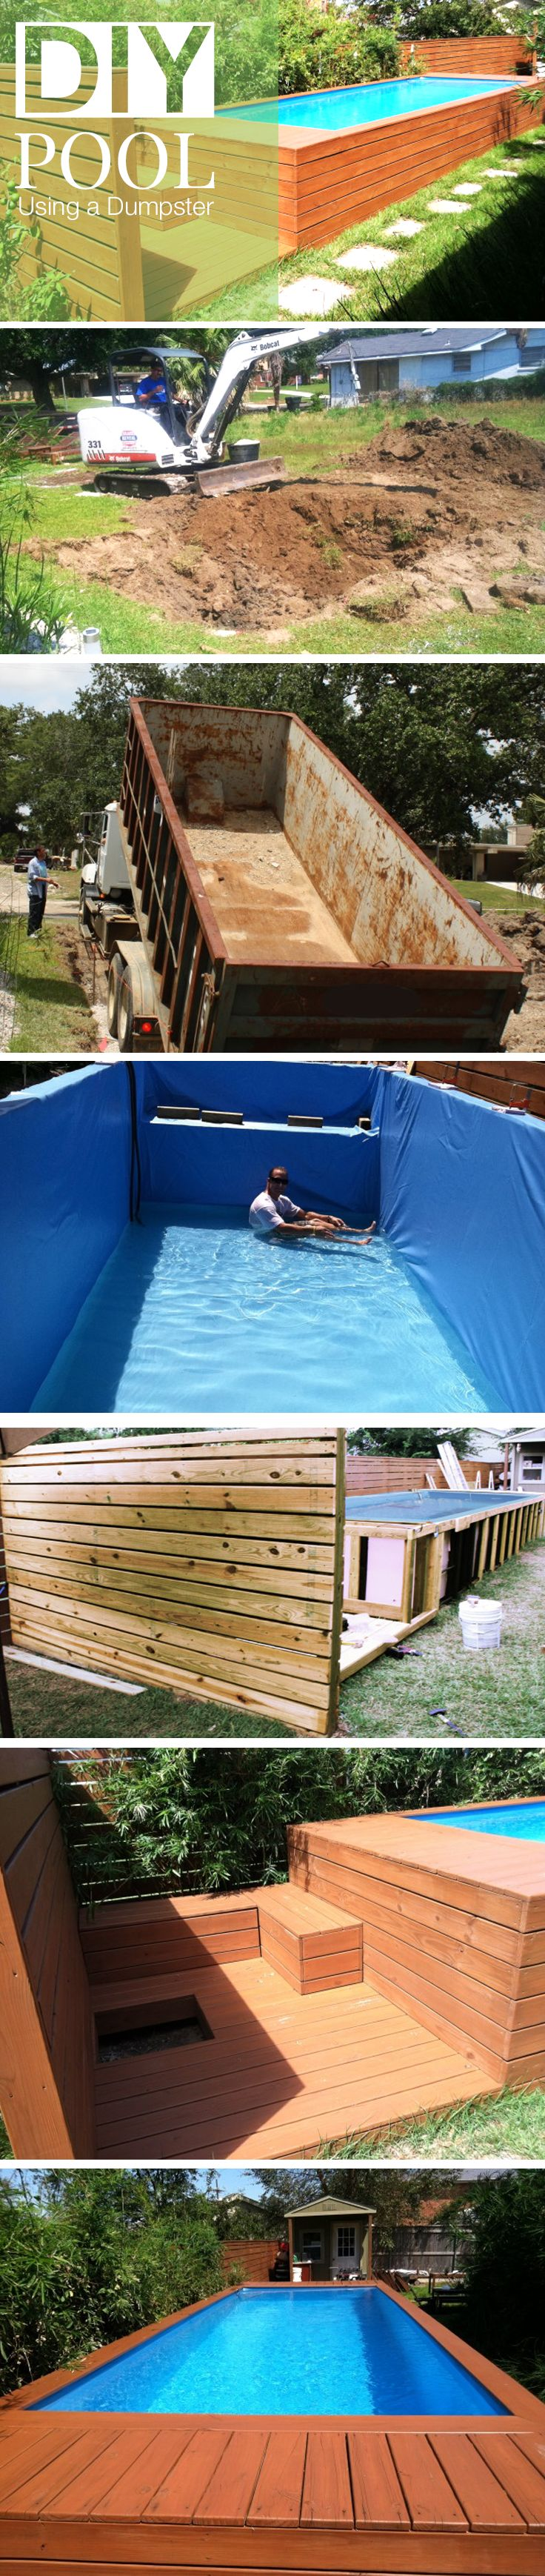 DIY Dumpster Pool: This DIY pool will blow you away!